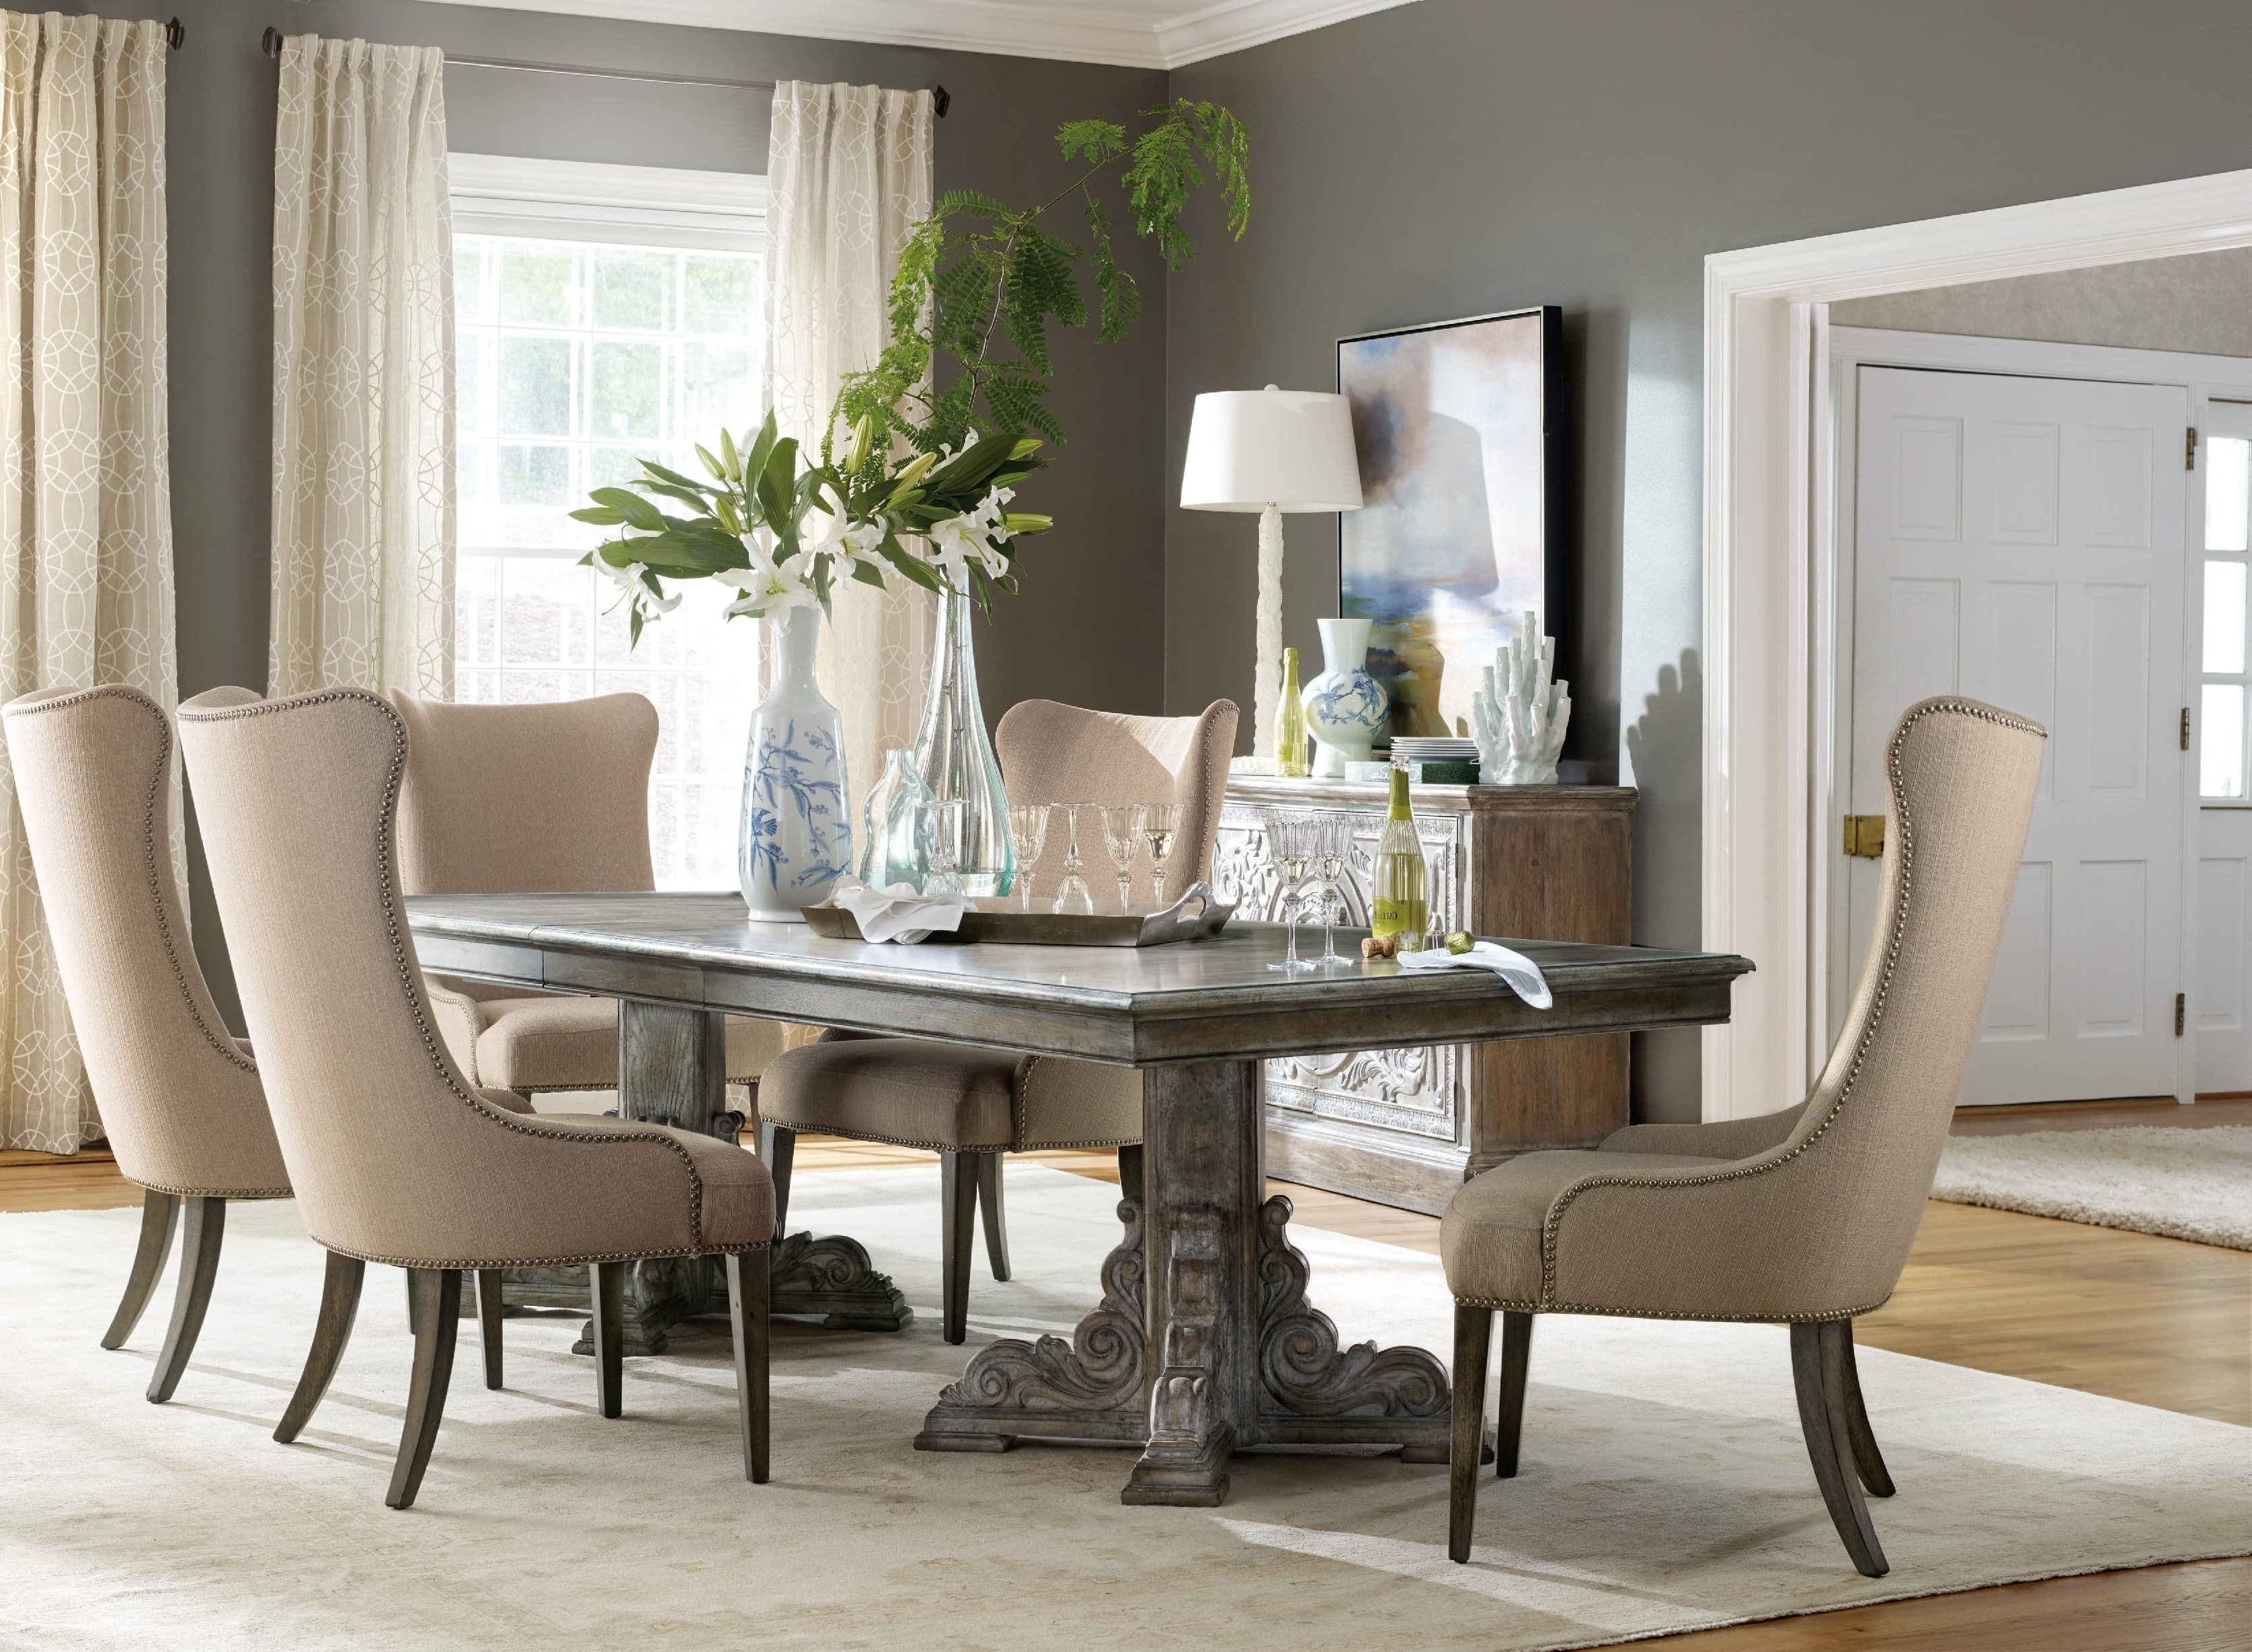 Fashionable Extendable Dining Table Sets Intended For Hooker Furniture True Vintage 3 Piece Extendable Dining Table Set (Gallery 7 of 25)